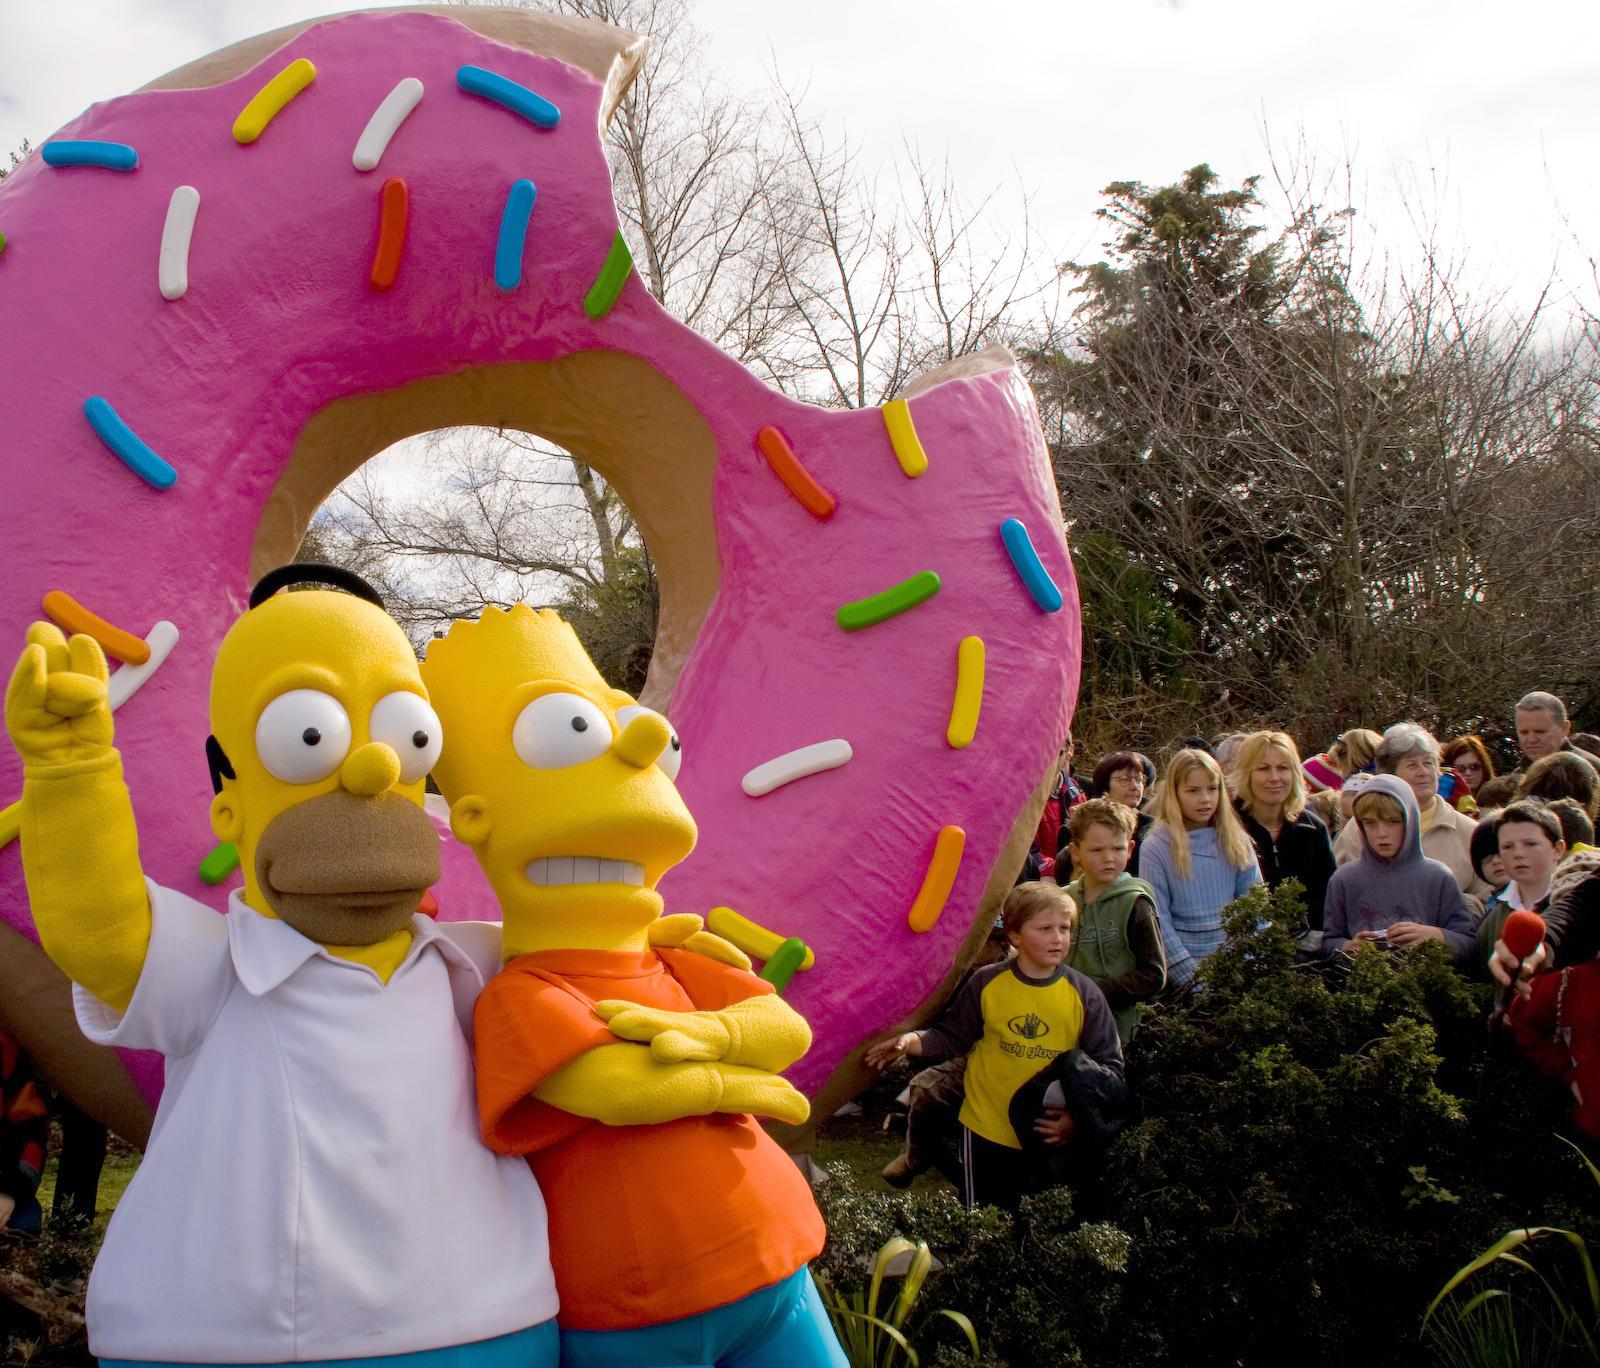 images from the simpsons movie celebration in springfield new zealand